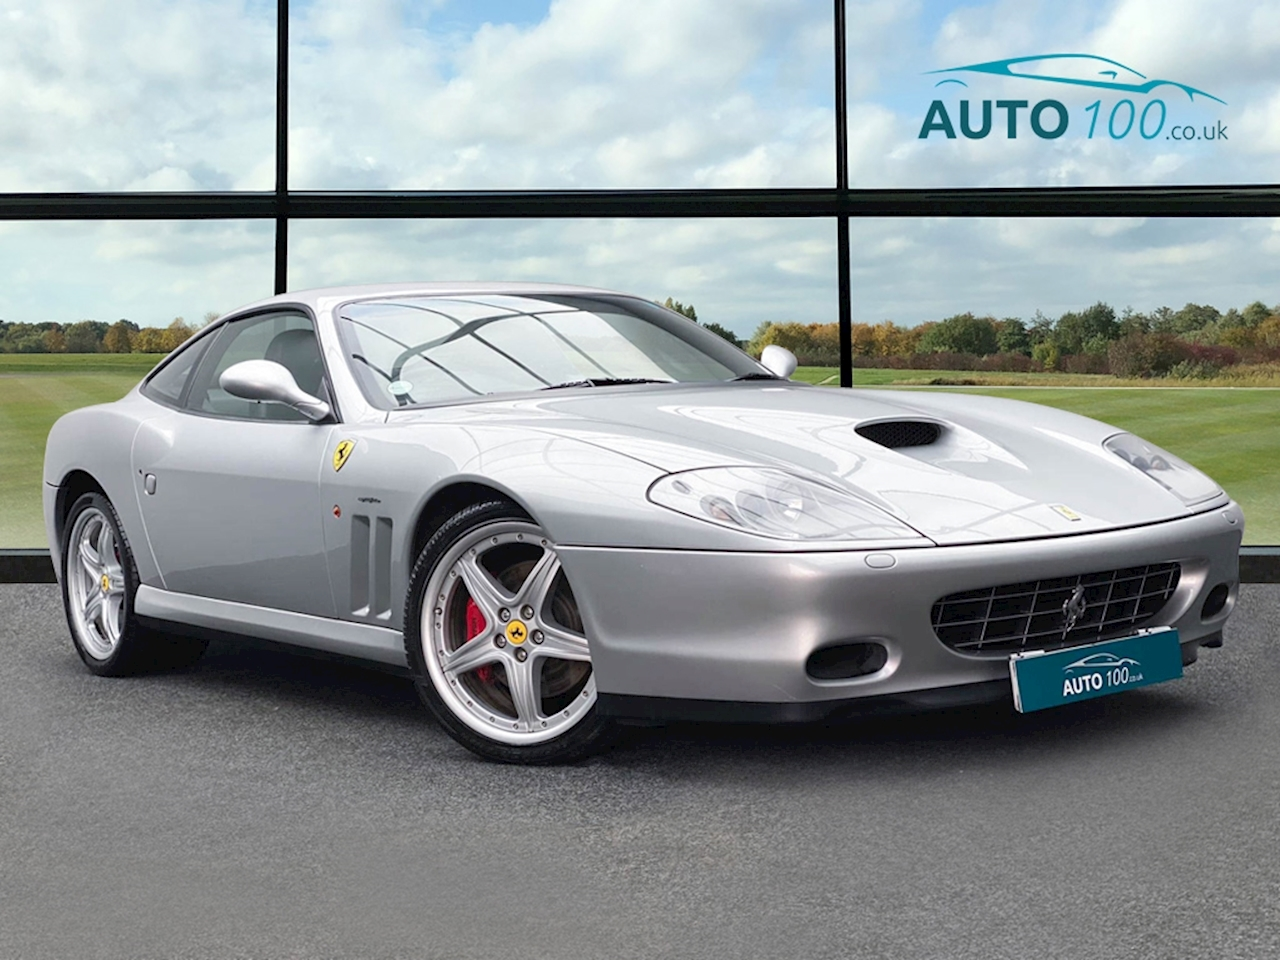 Ferrari 575M  Saloon 4.0 Manual Petrol